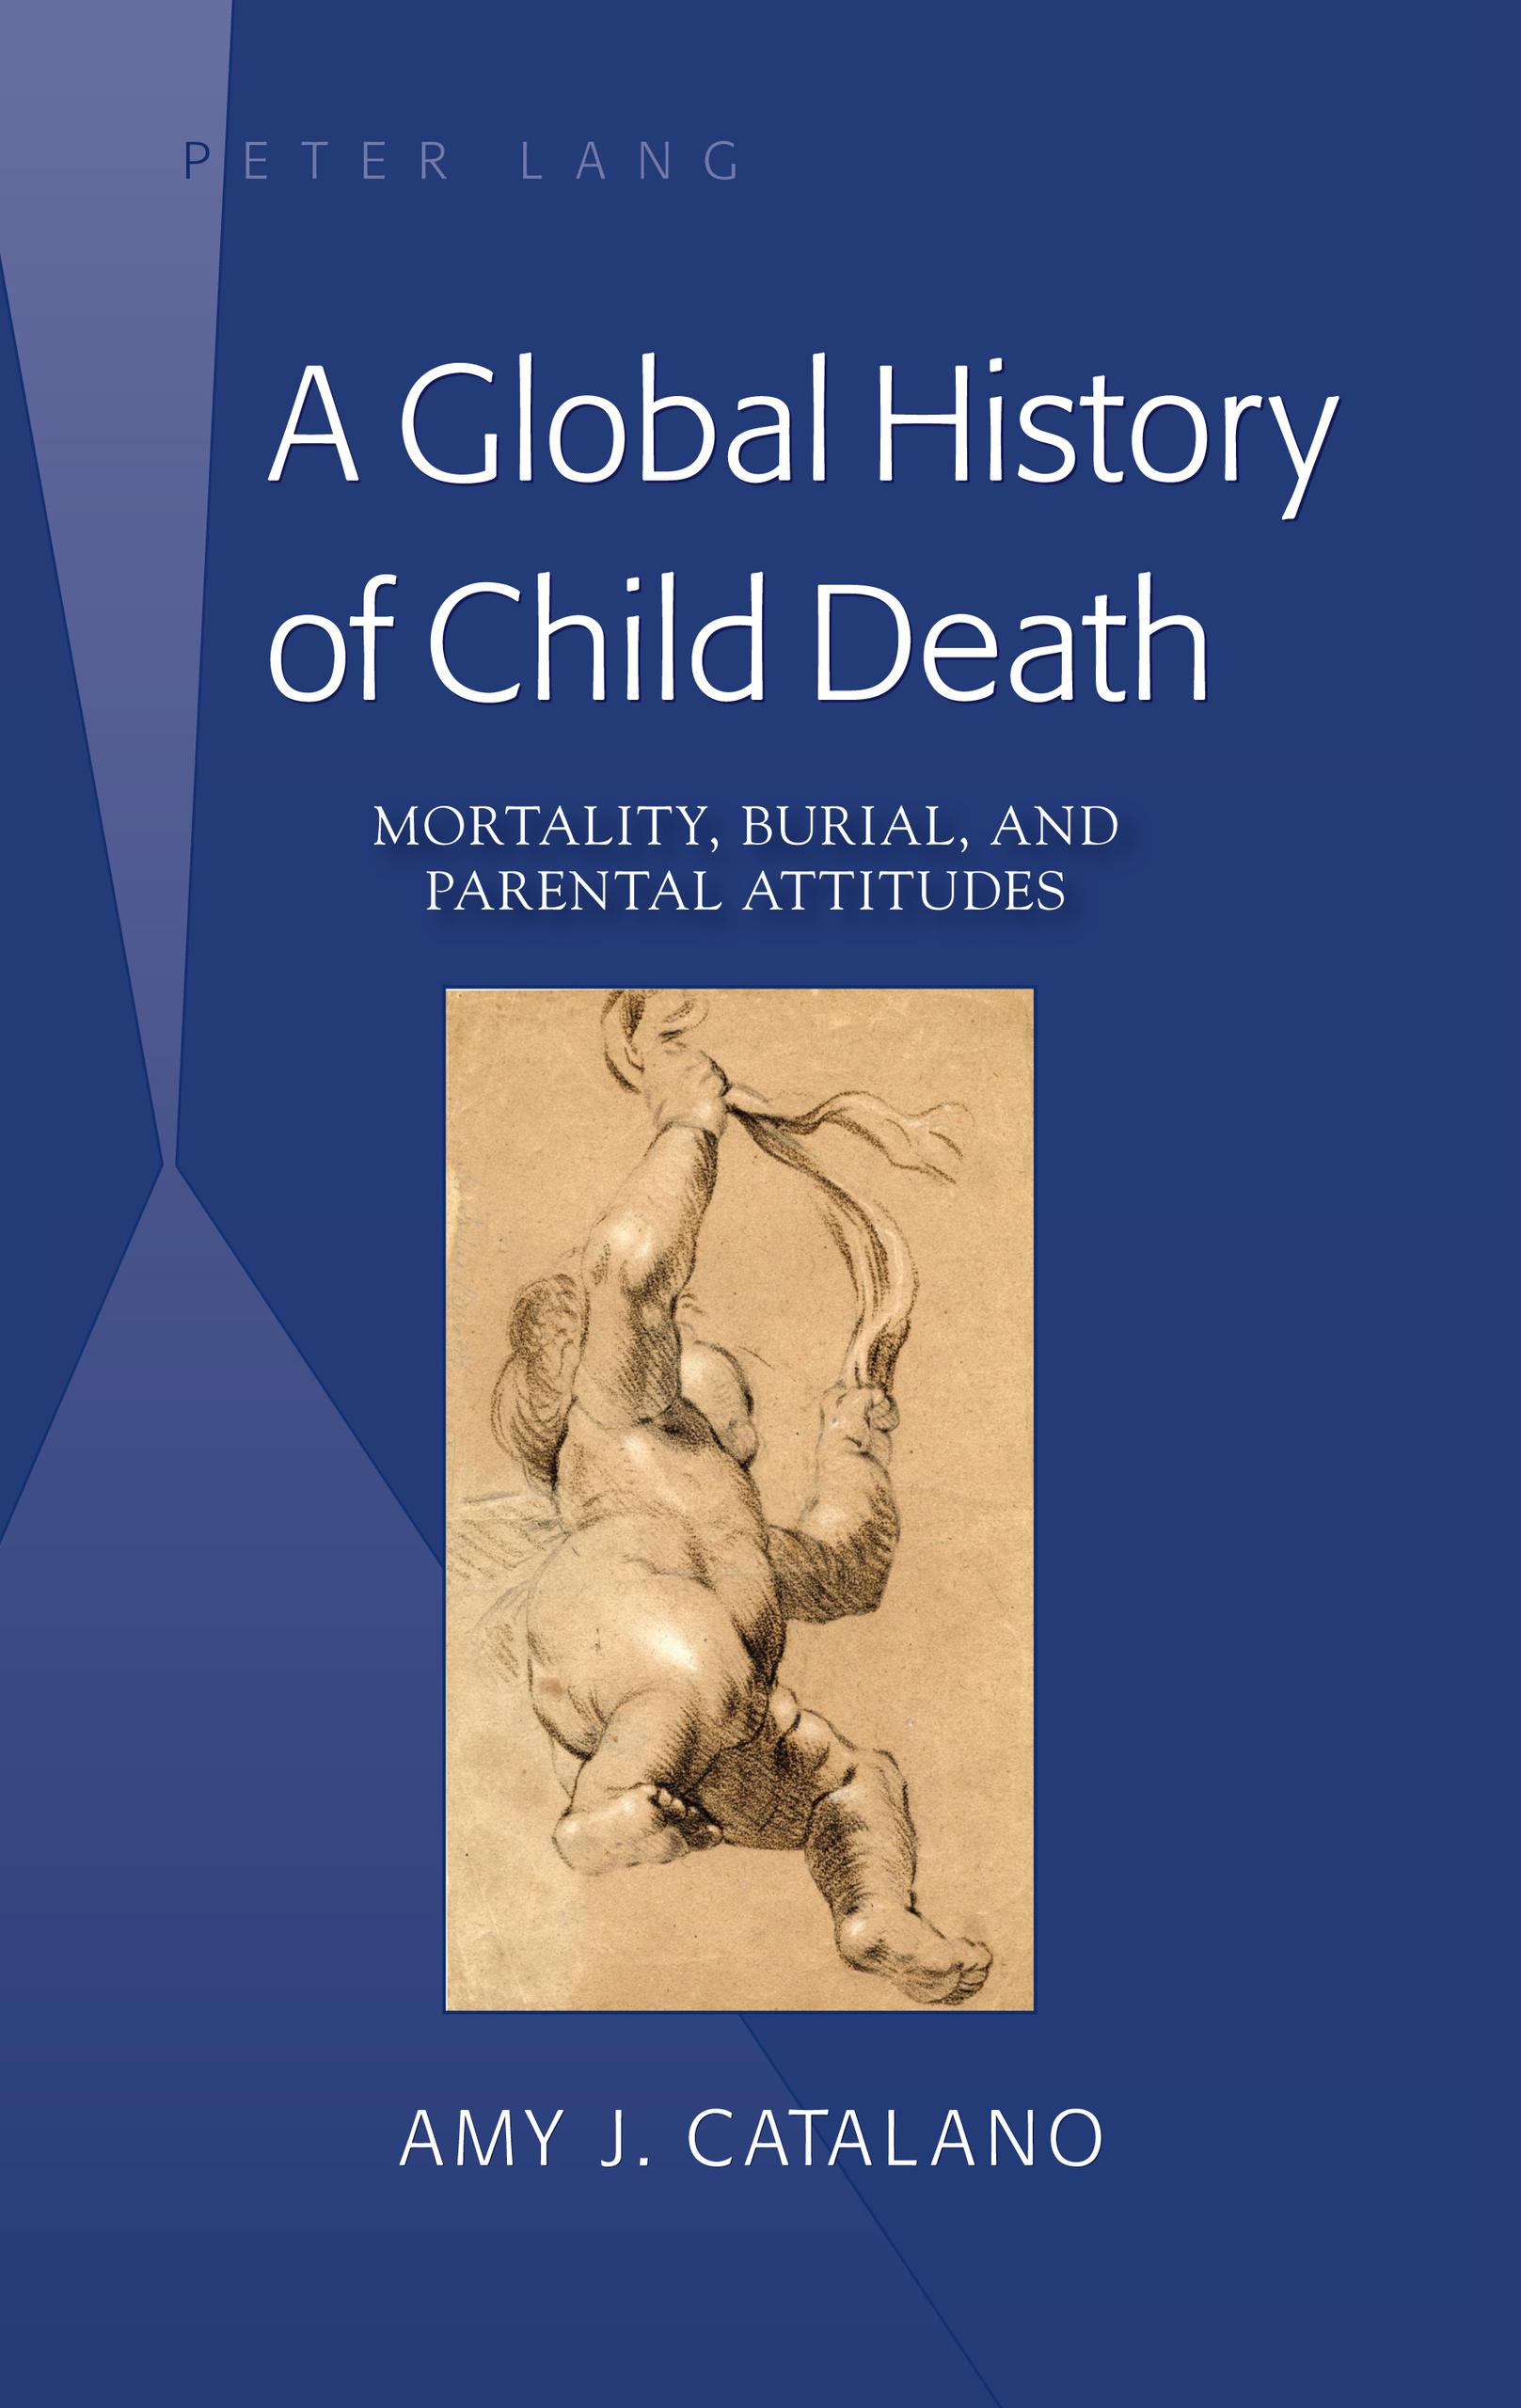 A Global History of Child Death | Amy J. Catalano |  9781433127427